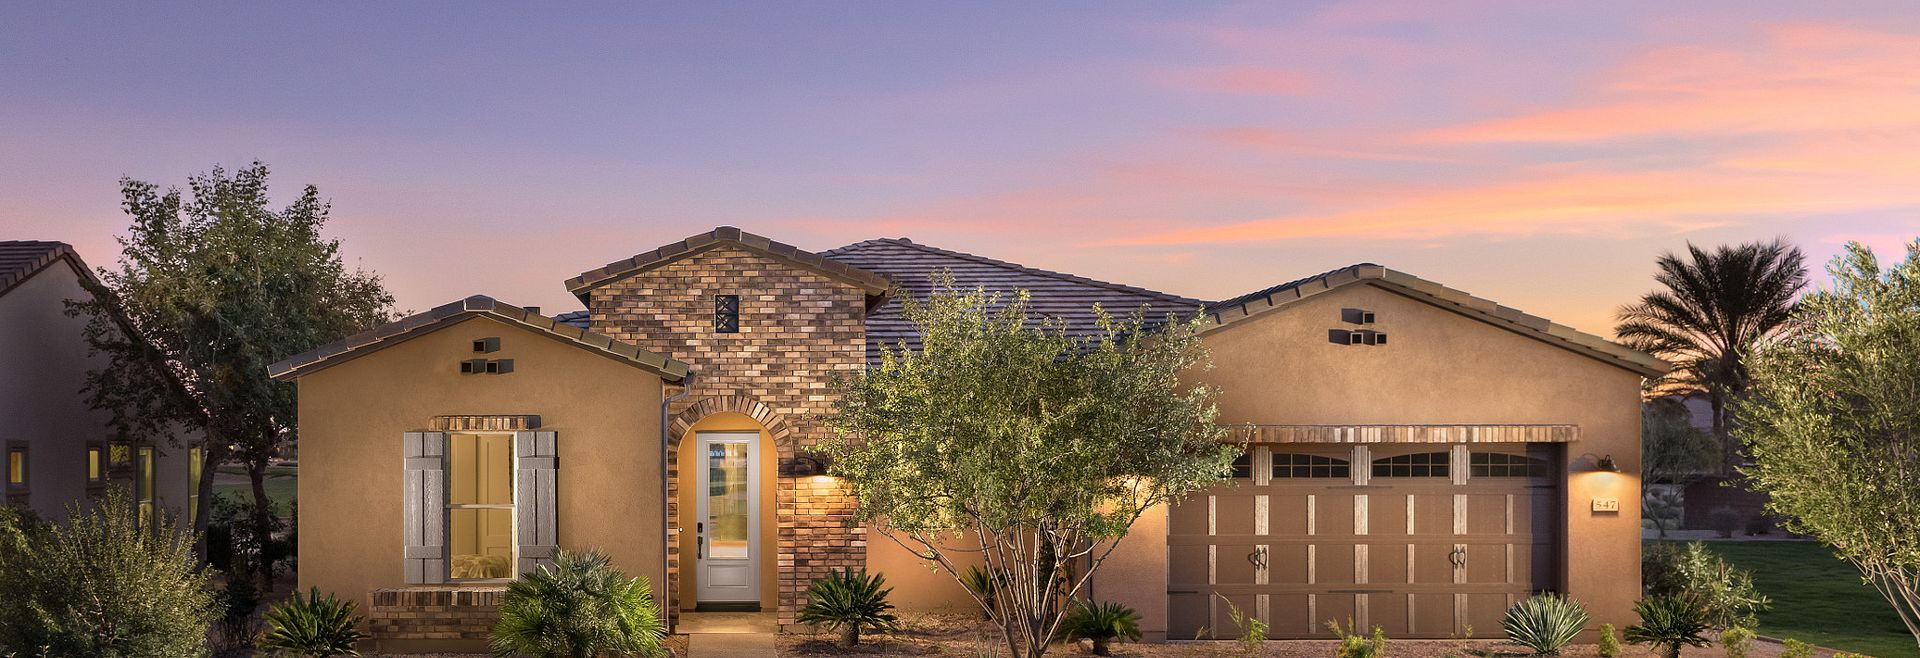 Encanterra by Shea Homes in San Tan Valley, Arizona